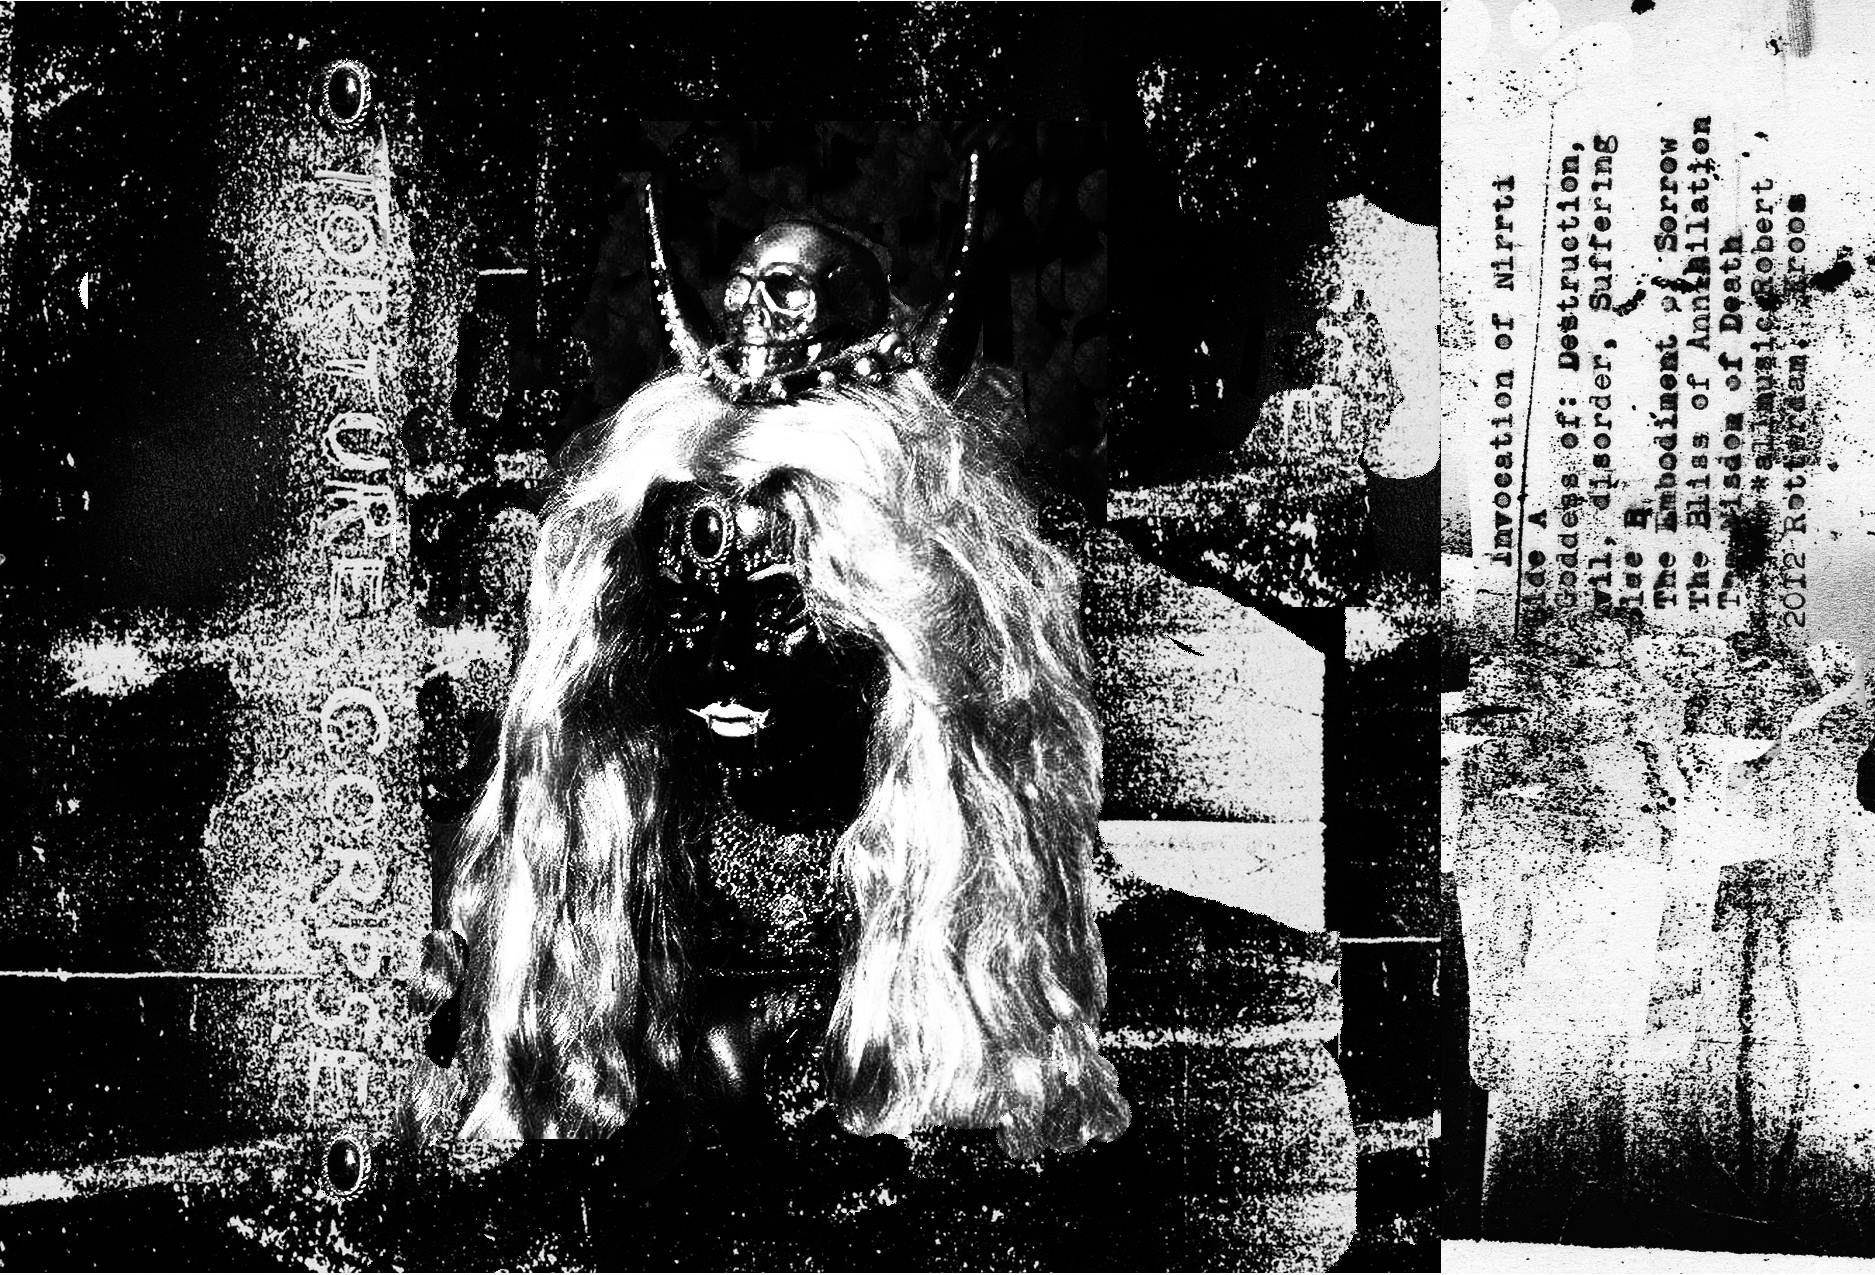 Torture Corpse / Invocation of Nirrti (Sanity Muffin)